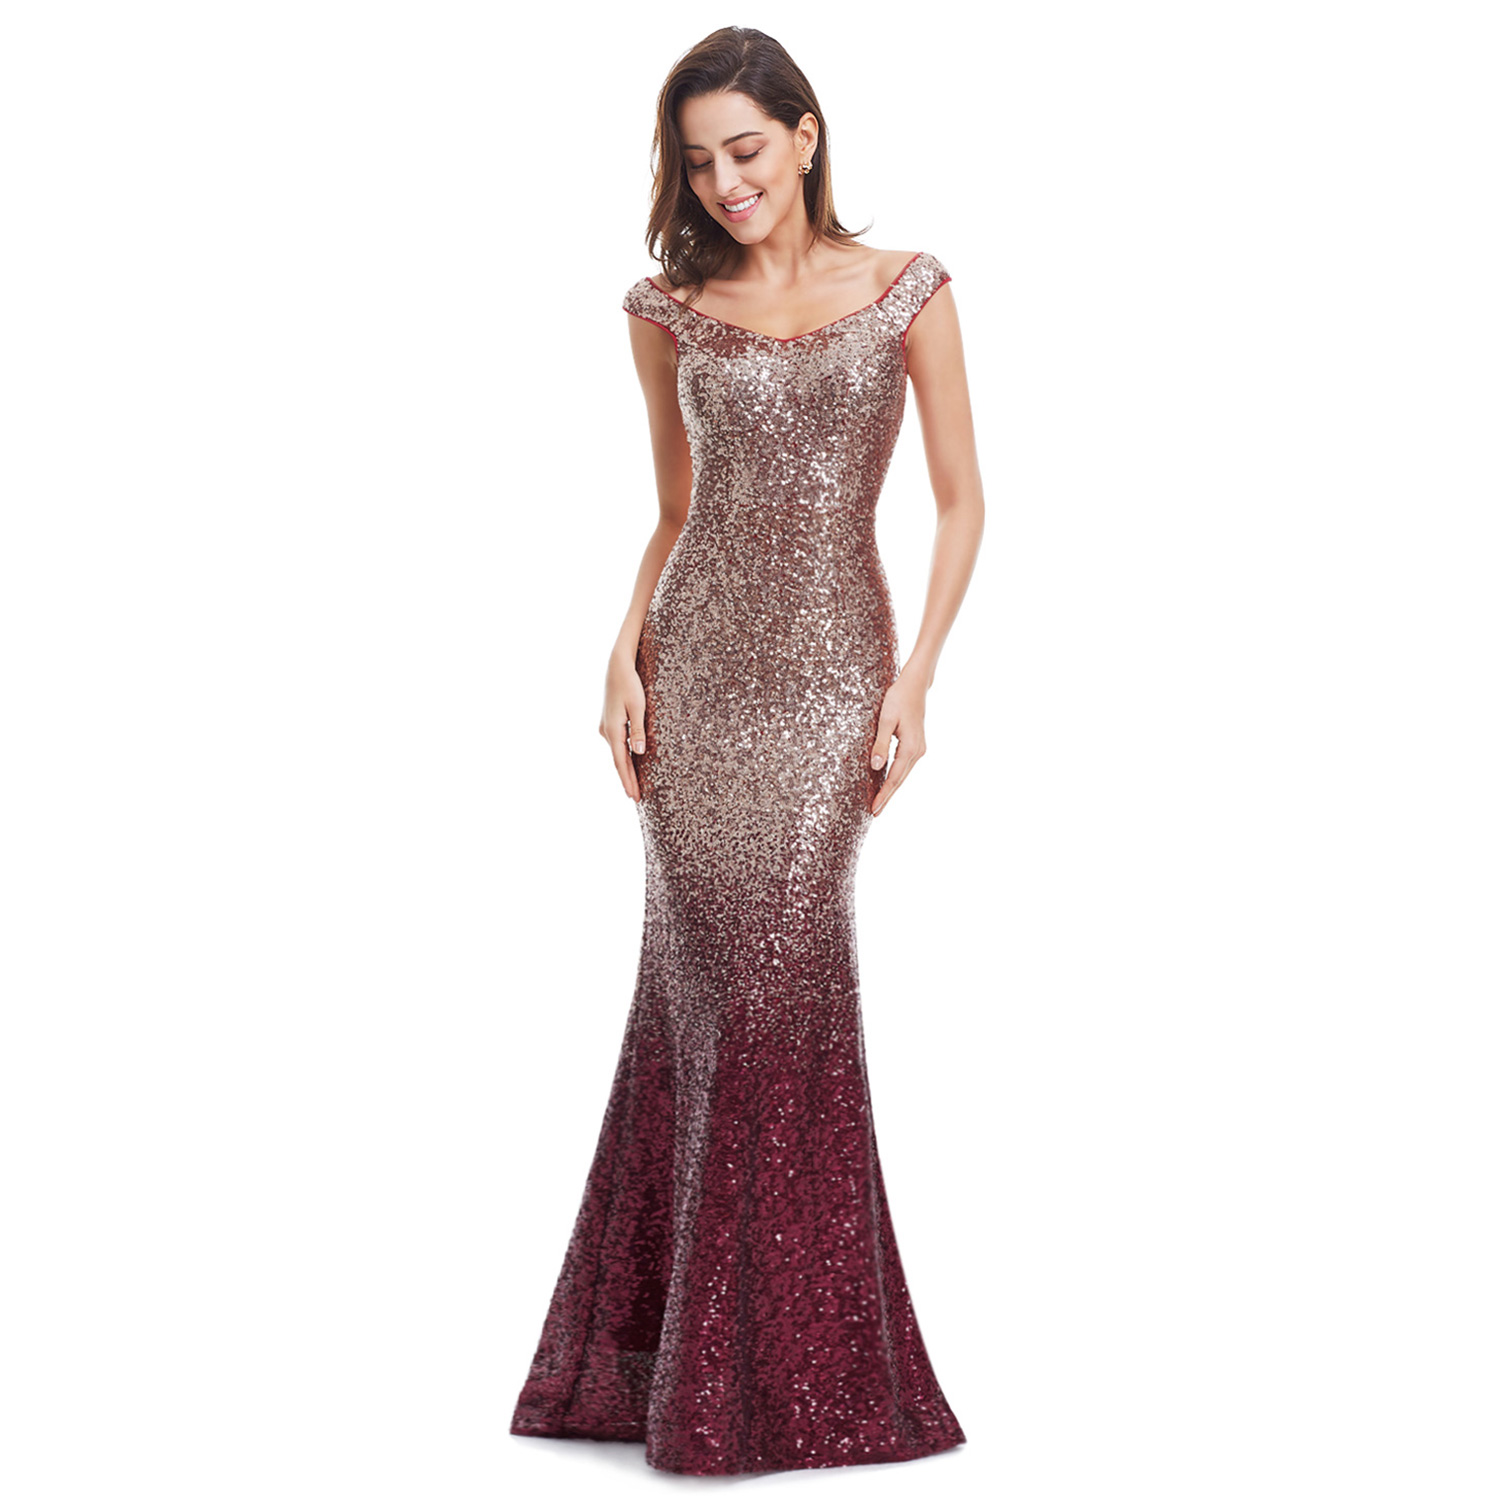 Mermaid Cocktail Party Dress